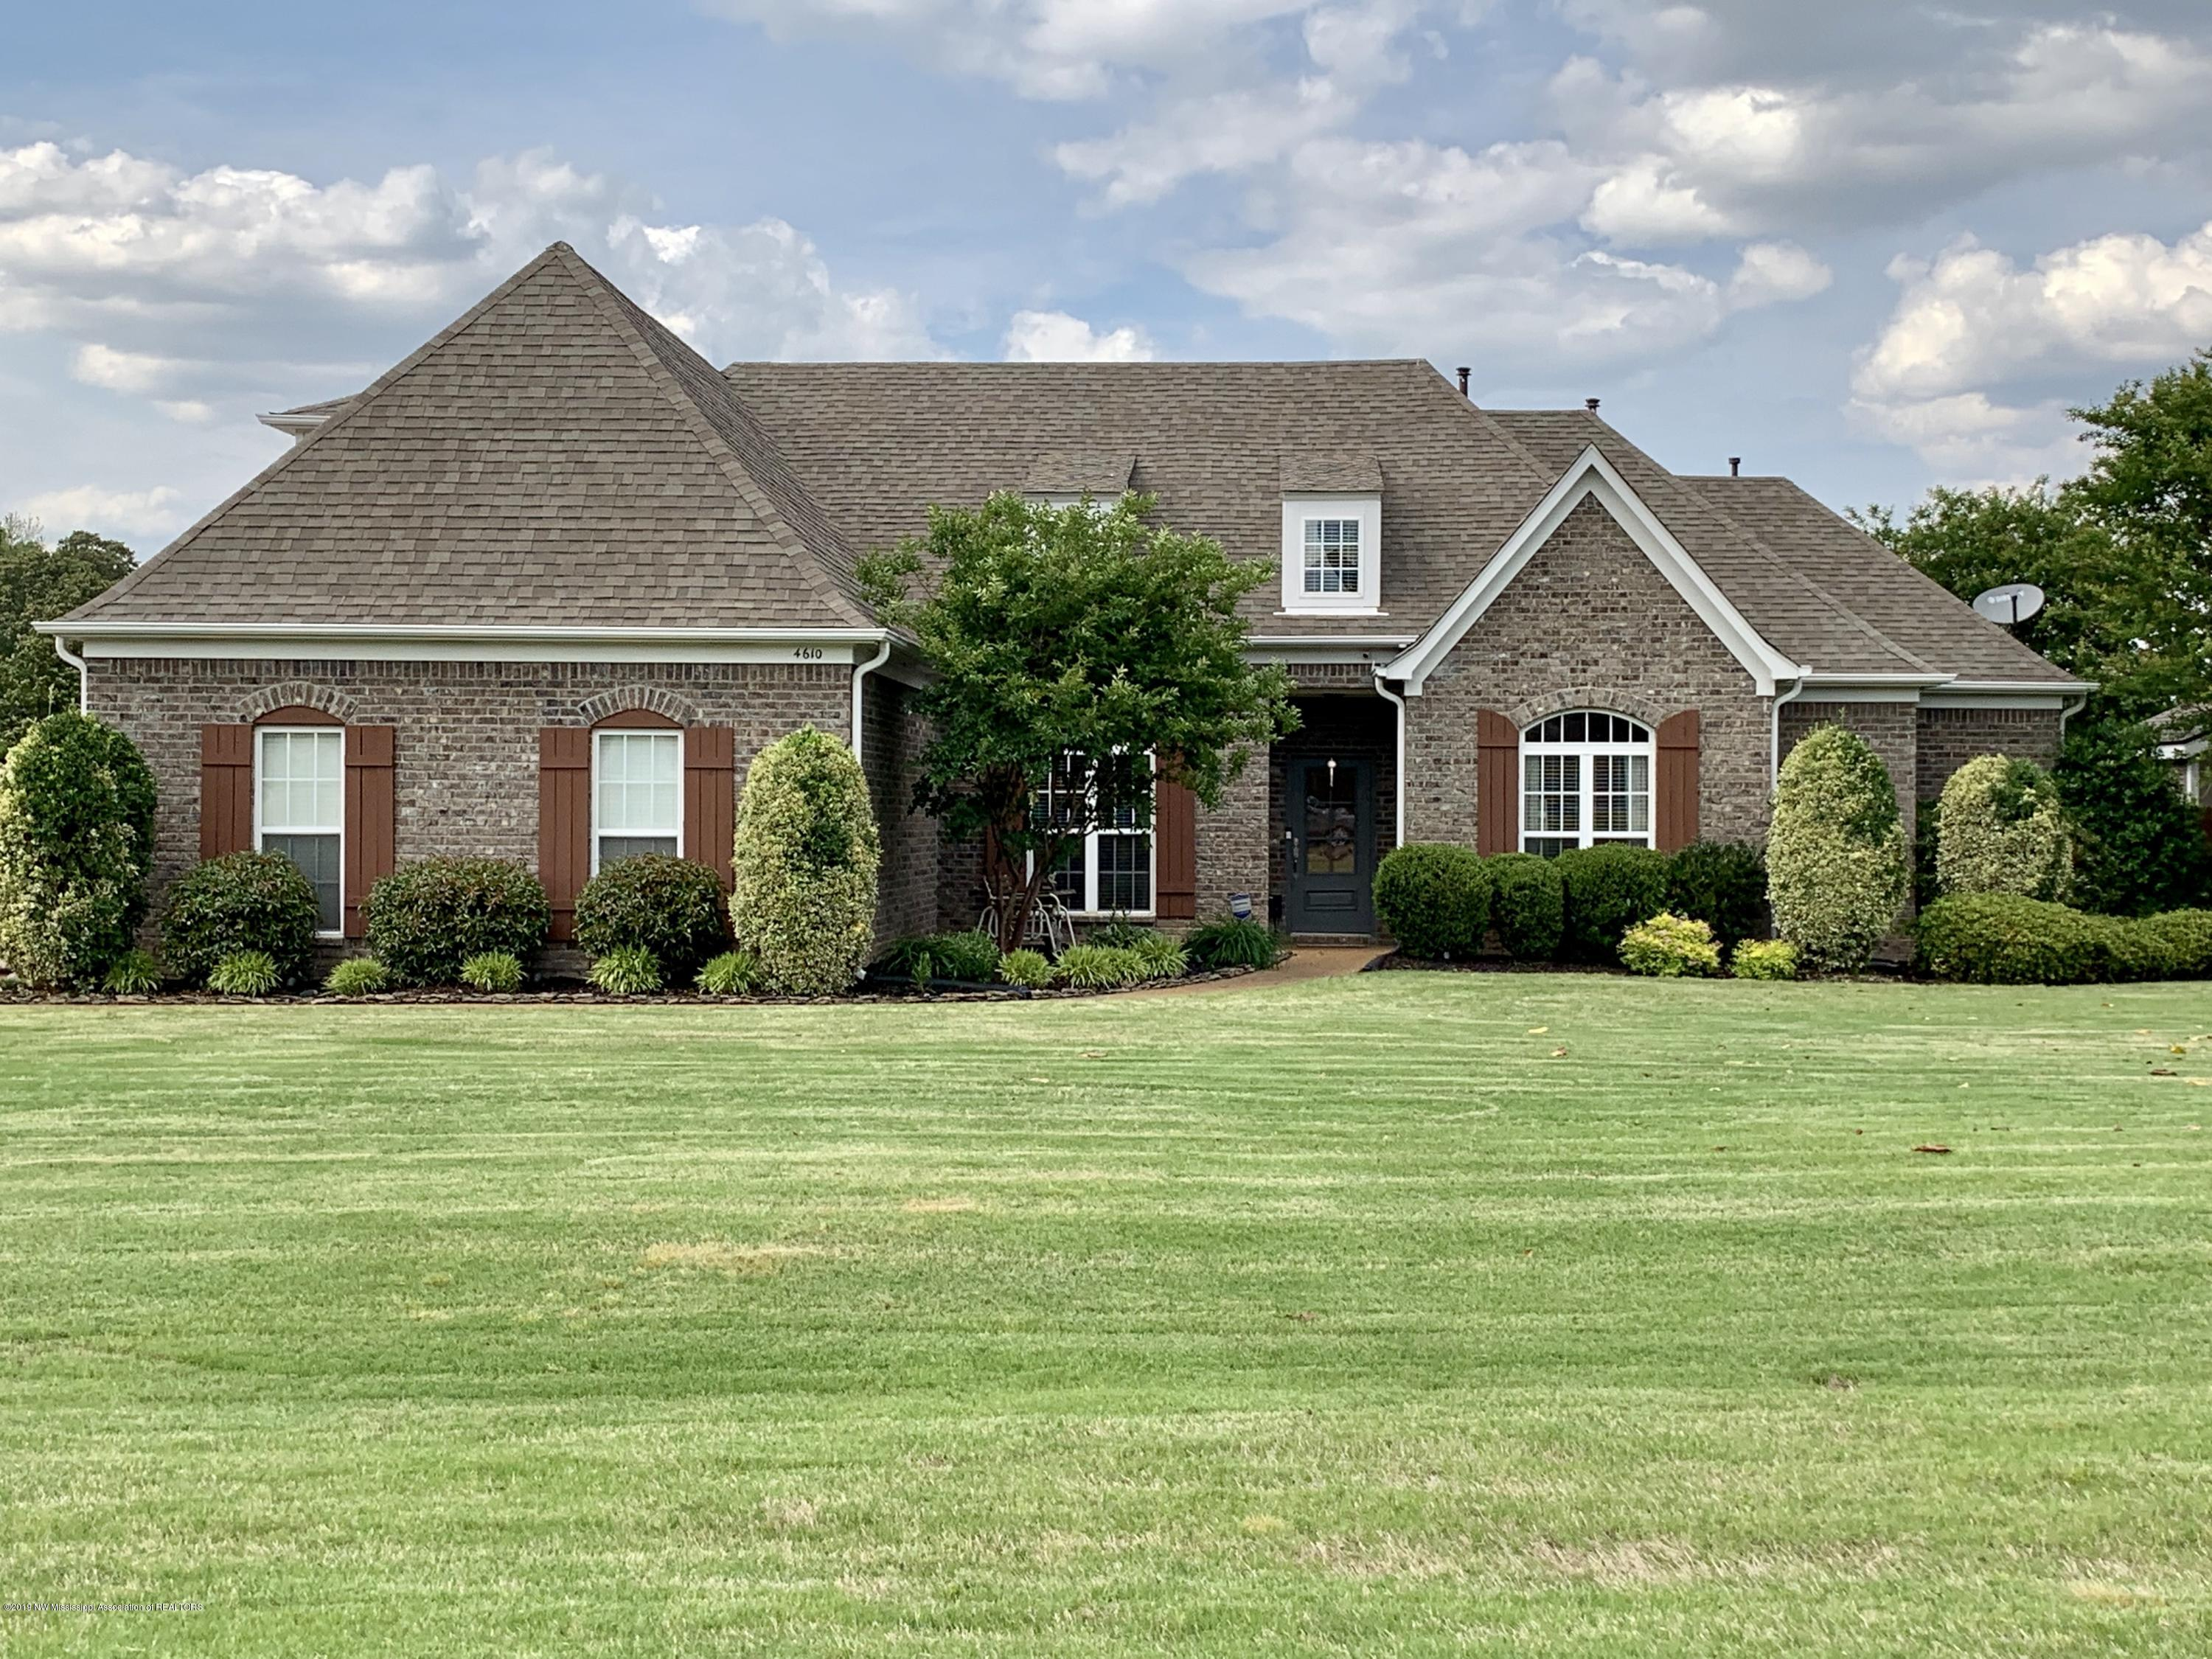 Homes for sale in olive branch real estate in olive branch - 5 bedroom homes for sale in olive branch ms ...